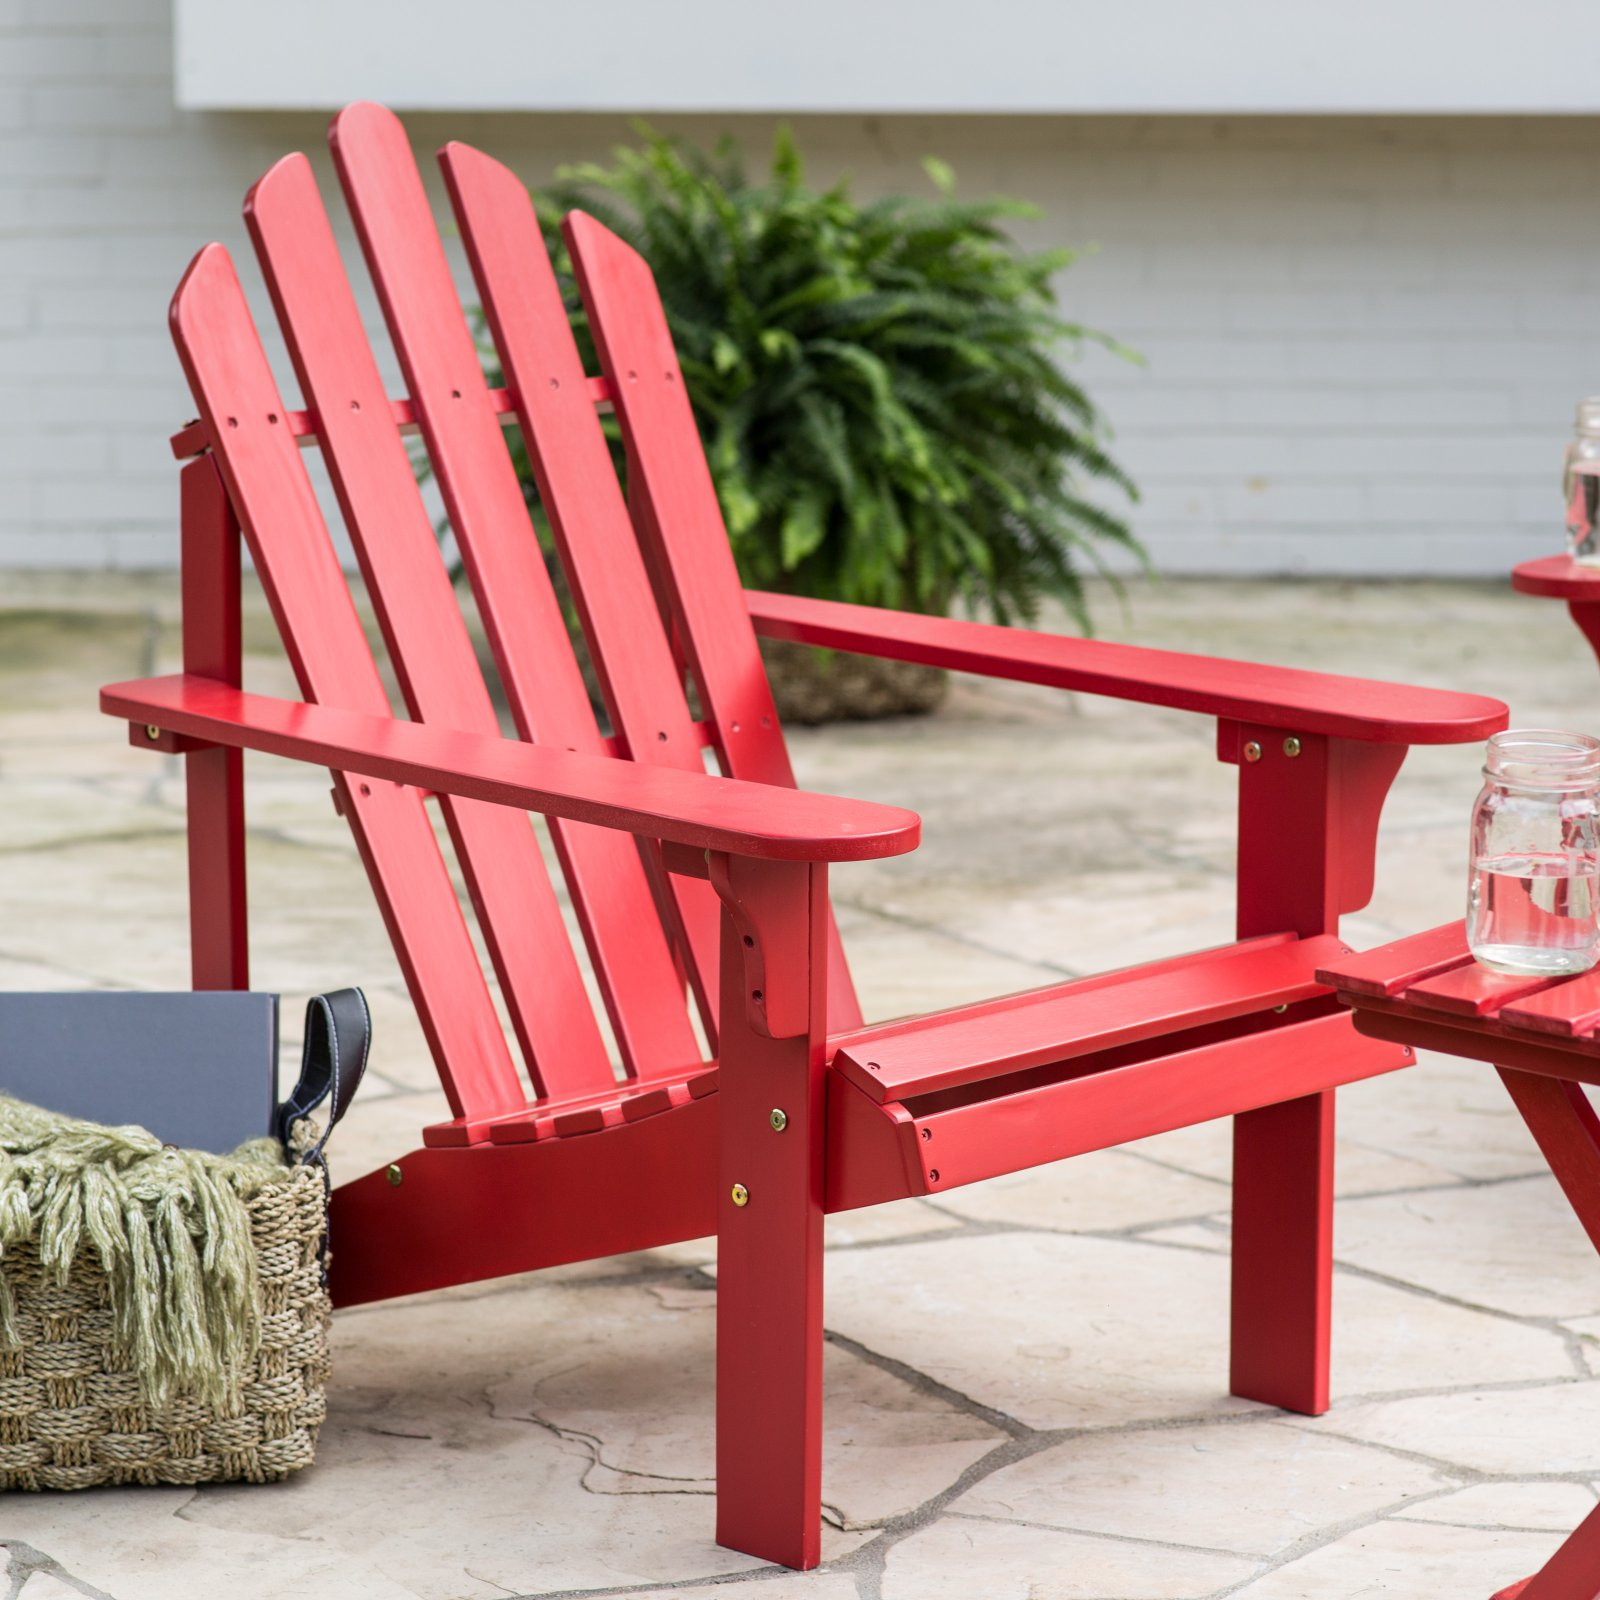 Coral Coast Pleasant Bay Acacia Adirondack Chair - Red